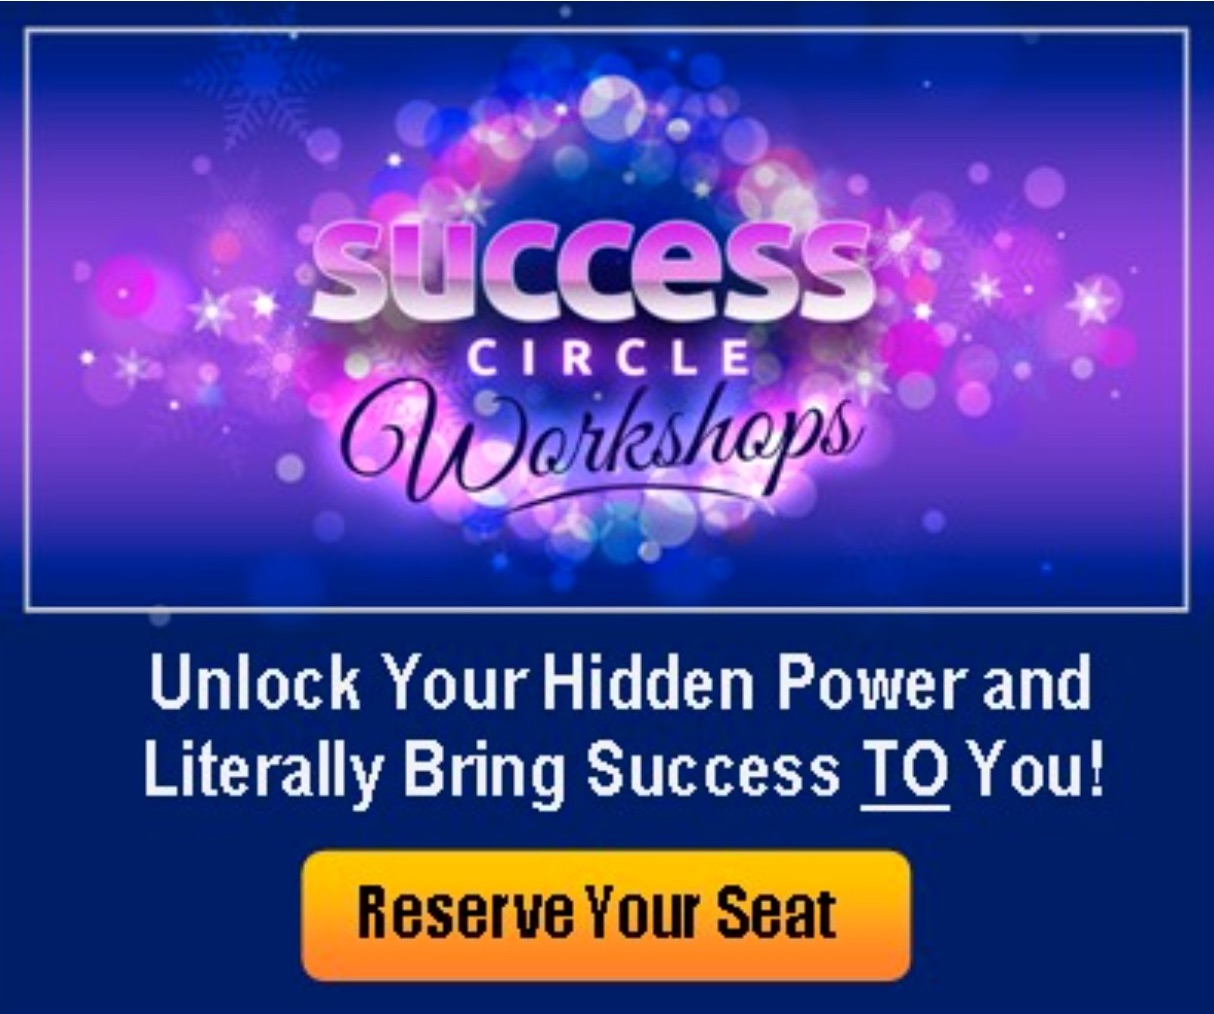 Success Circles Workshops